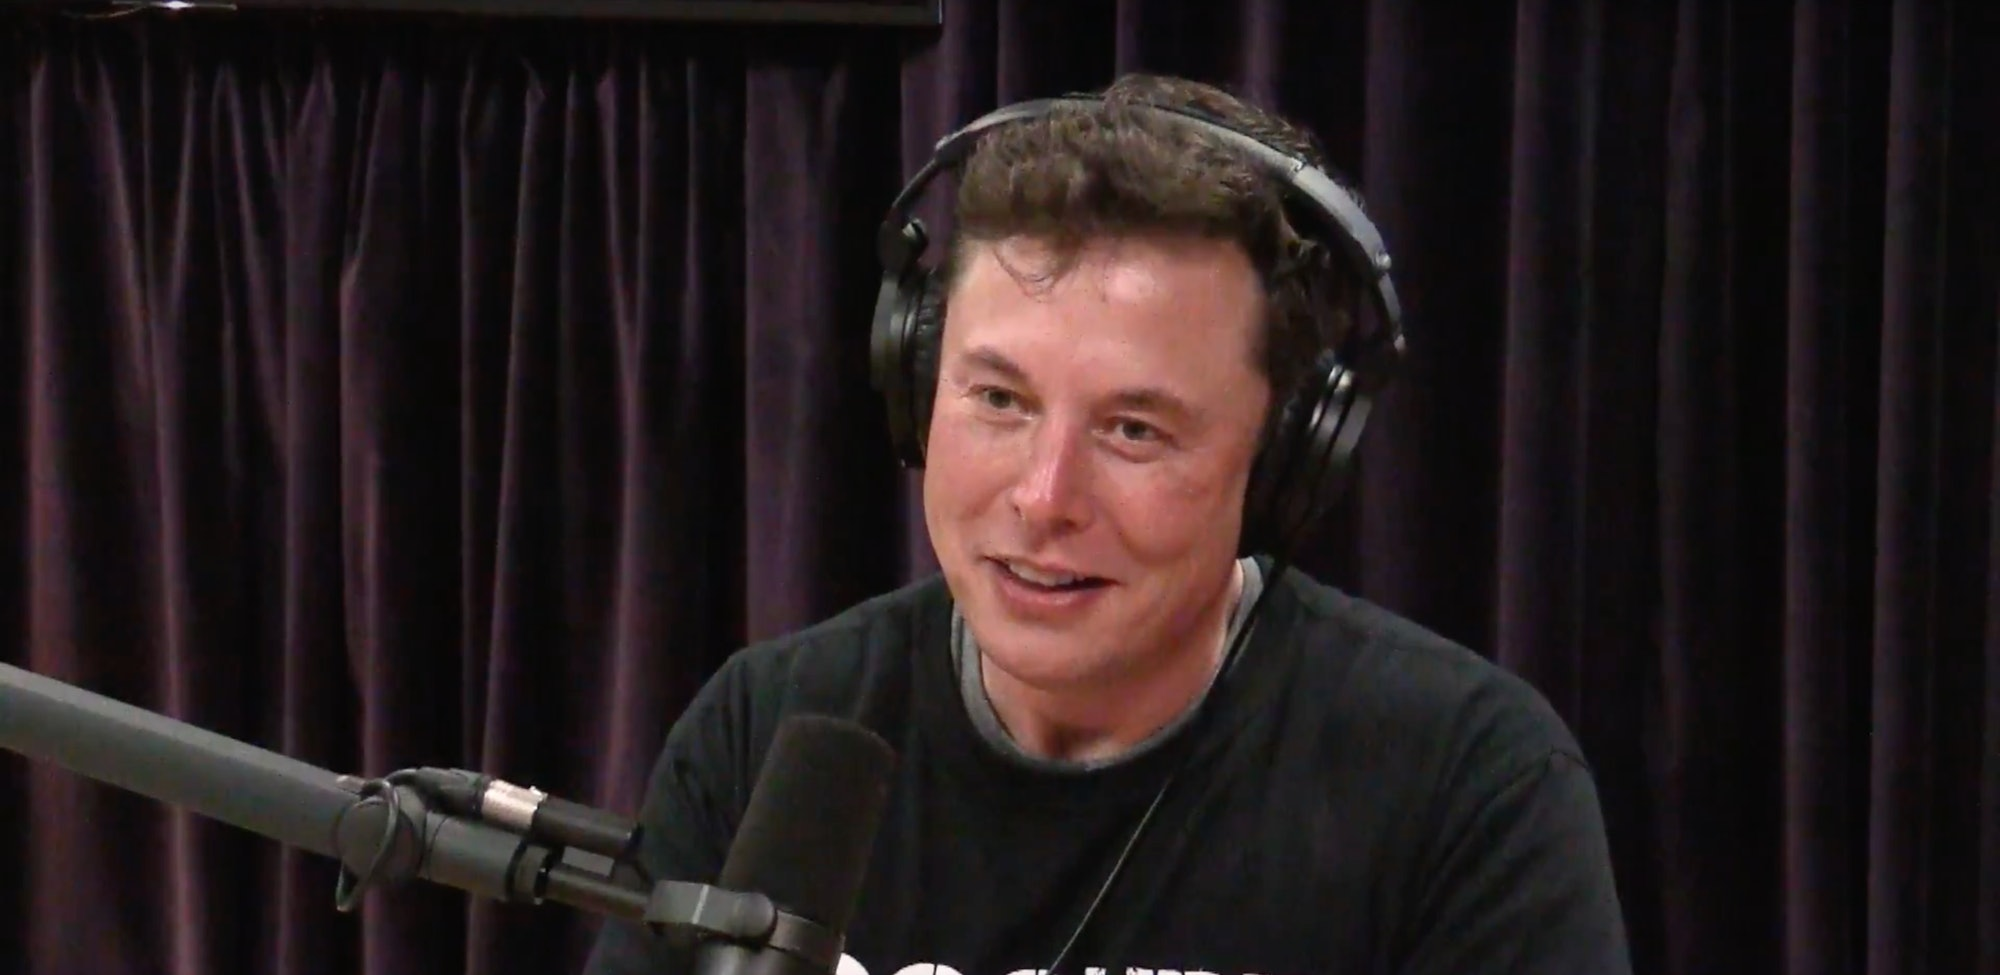 Elon Musk on Joe Rogan